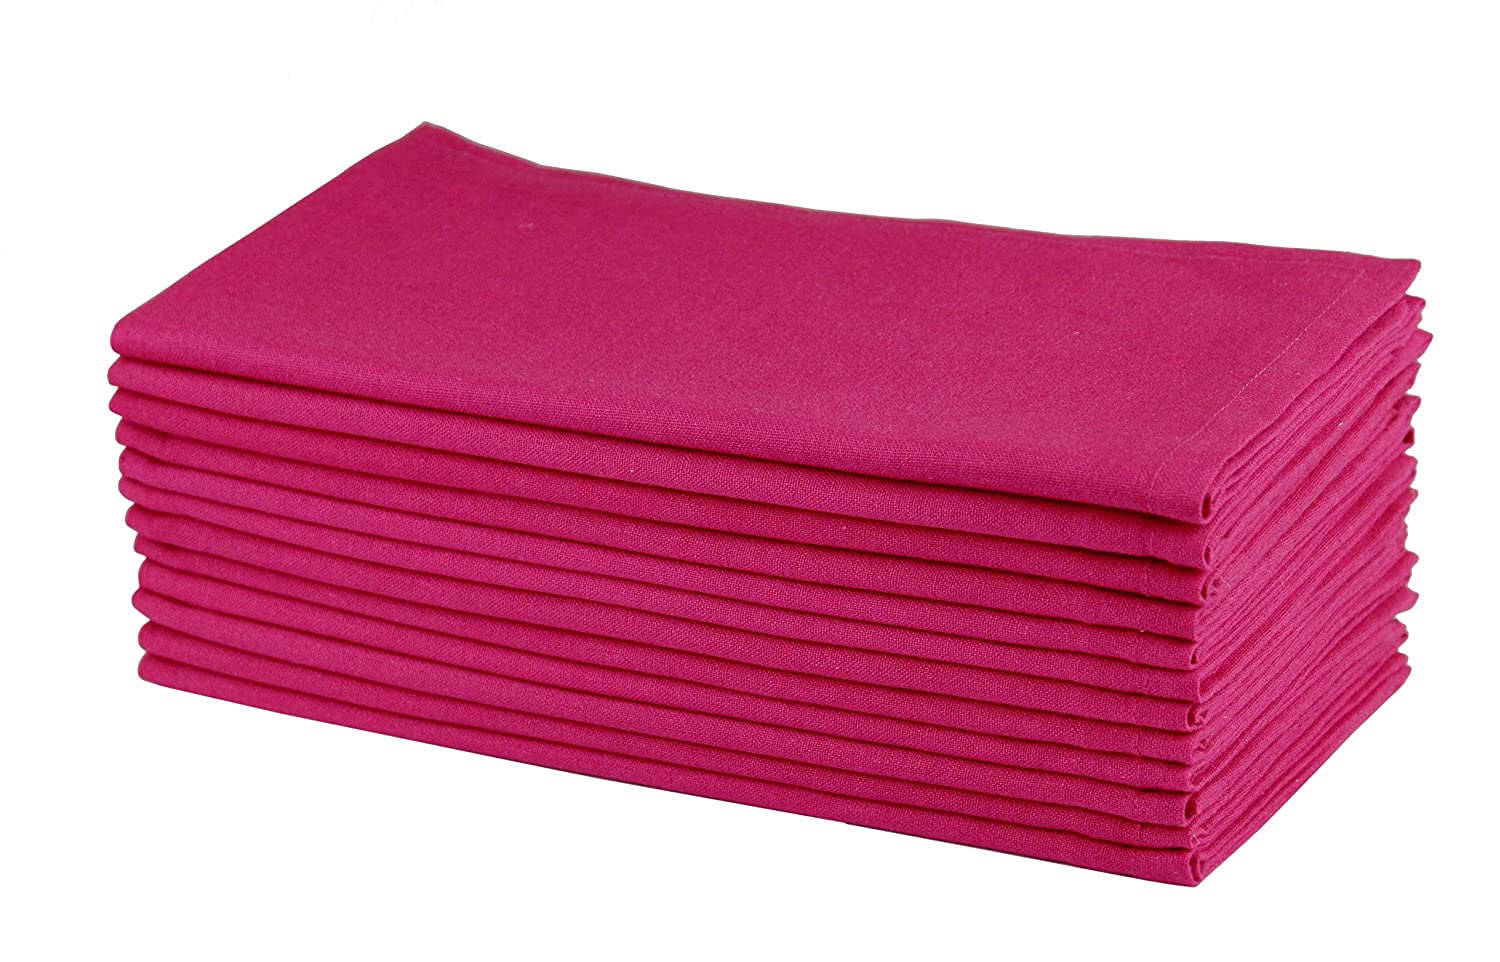 Cotton Craft Napkins-12 Pack Oversized Dinner Napkins- 51x51 CM Magenta-Pure 100% Cotton-Tailored with Mitered corners and a generous hem- Napkins are 38% larger than standard size napkins Orient Originals Inc.